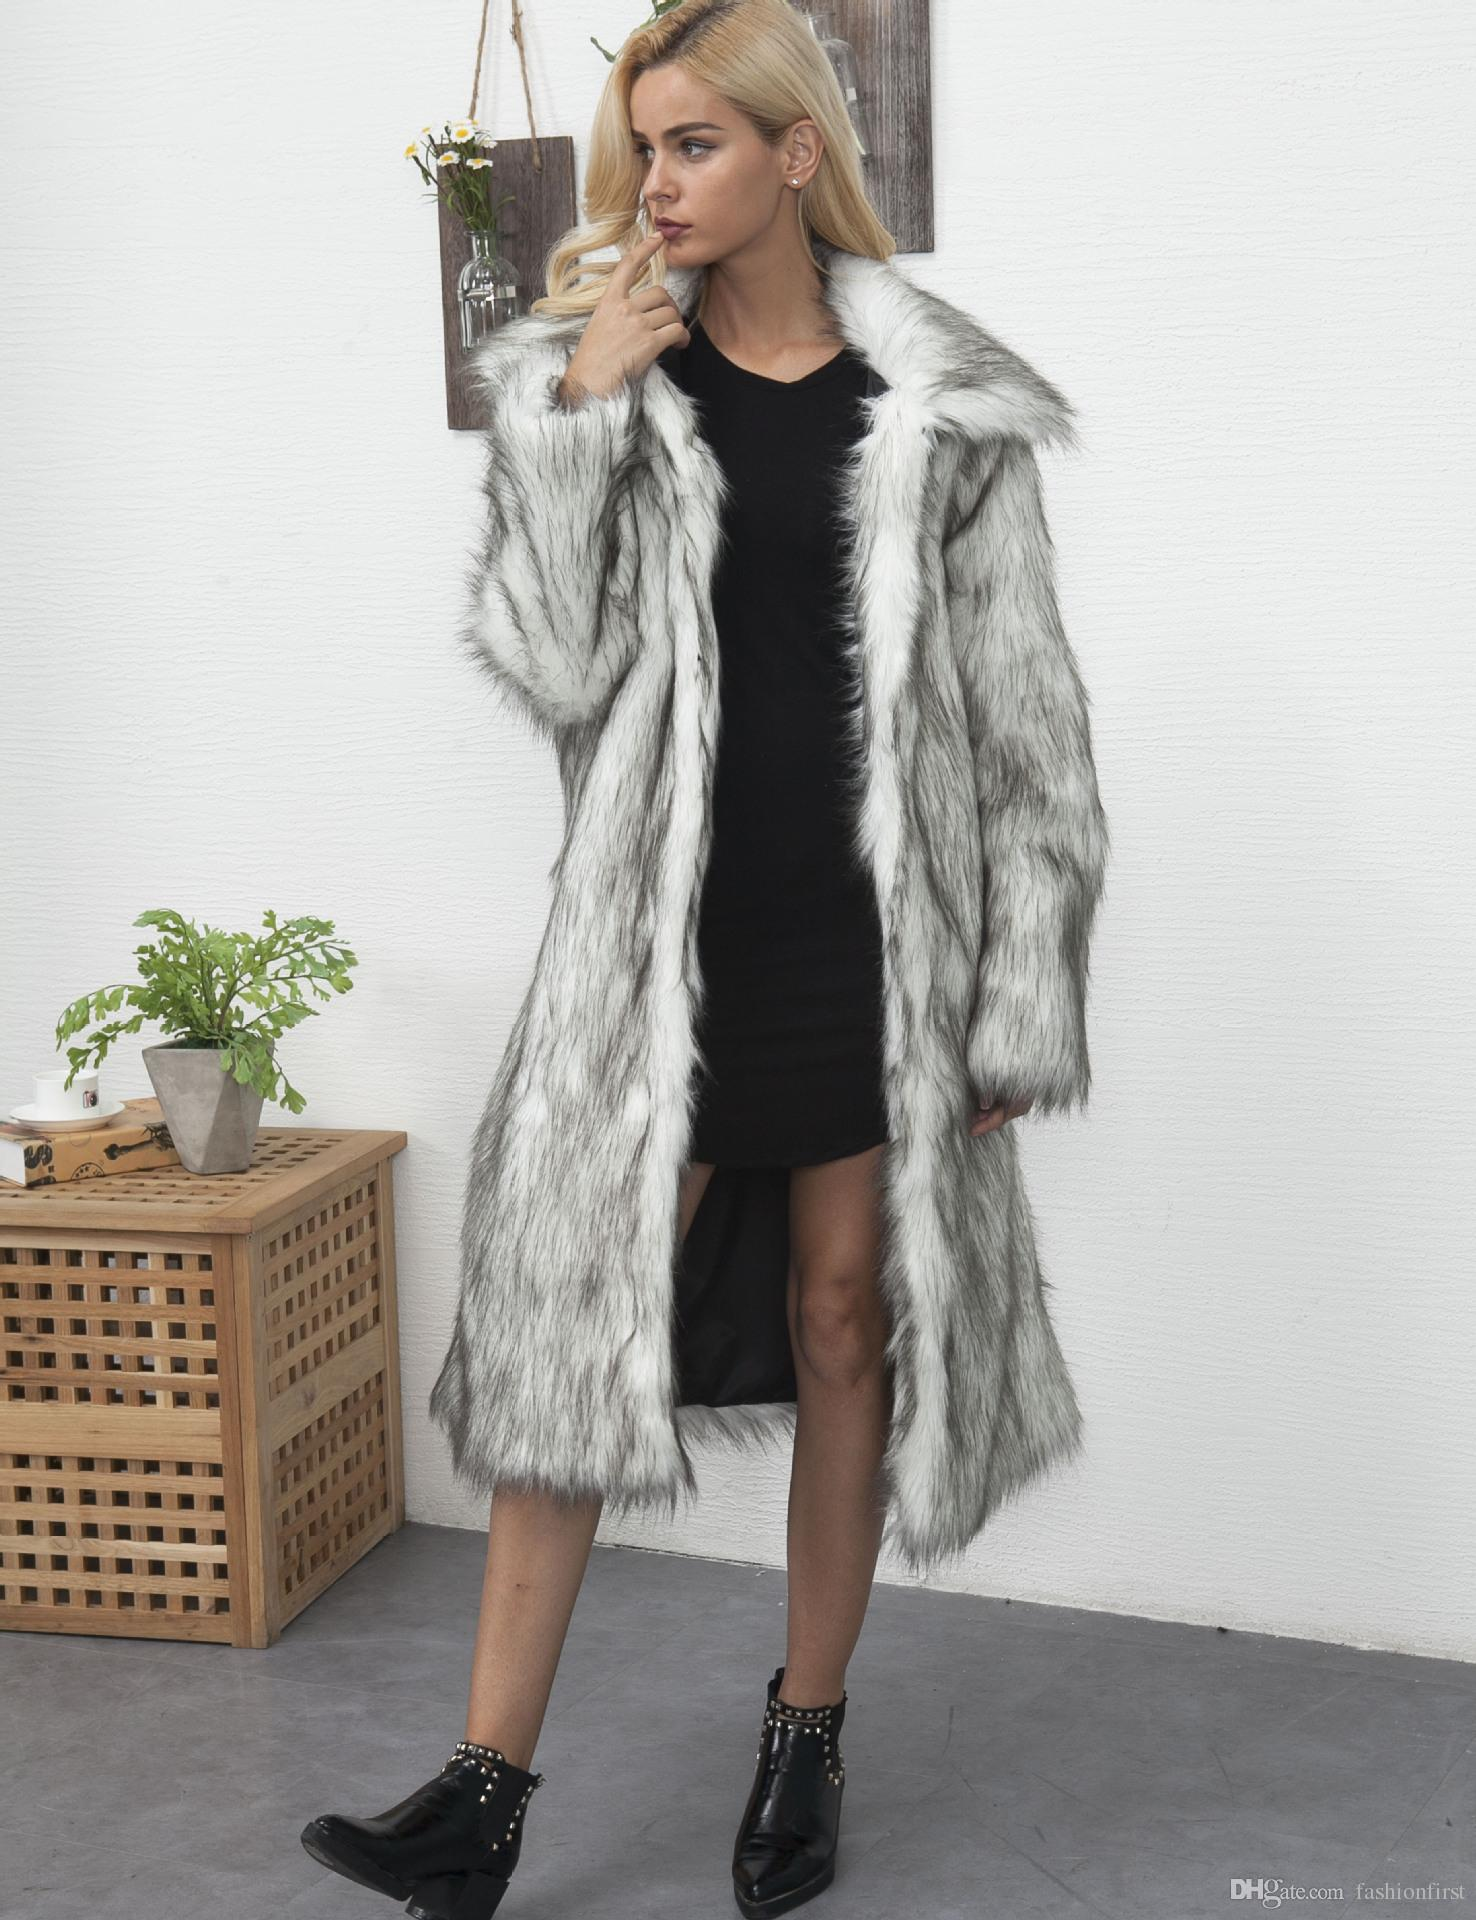 b1434974f2d 2019 Stylish Women Fur Coat Shop Fake Fur Jackets Warm Oversized Fashion Faux  Fur Coats Fashion Womens Coat From Fashionfirst